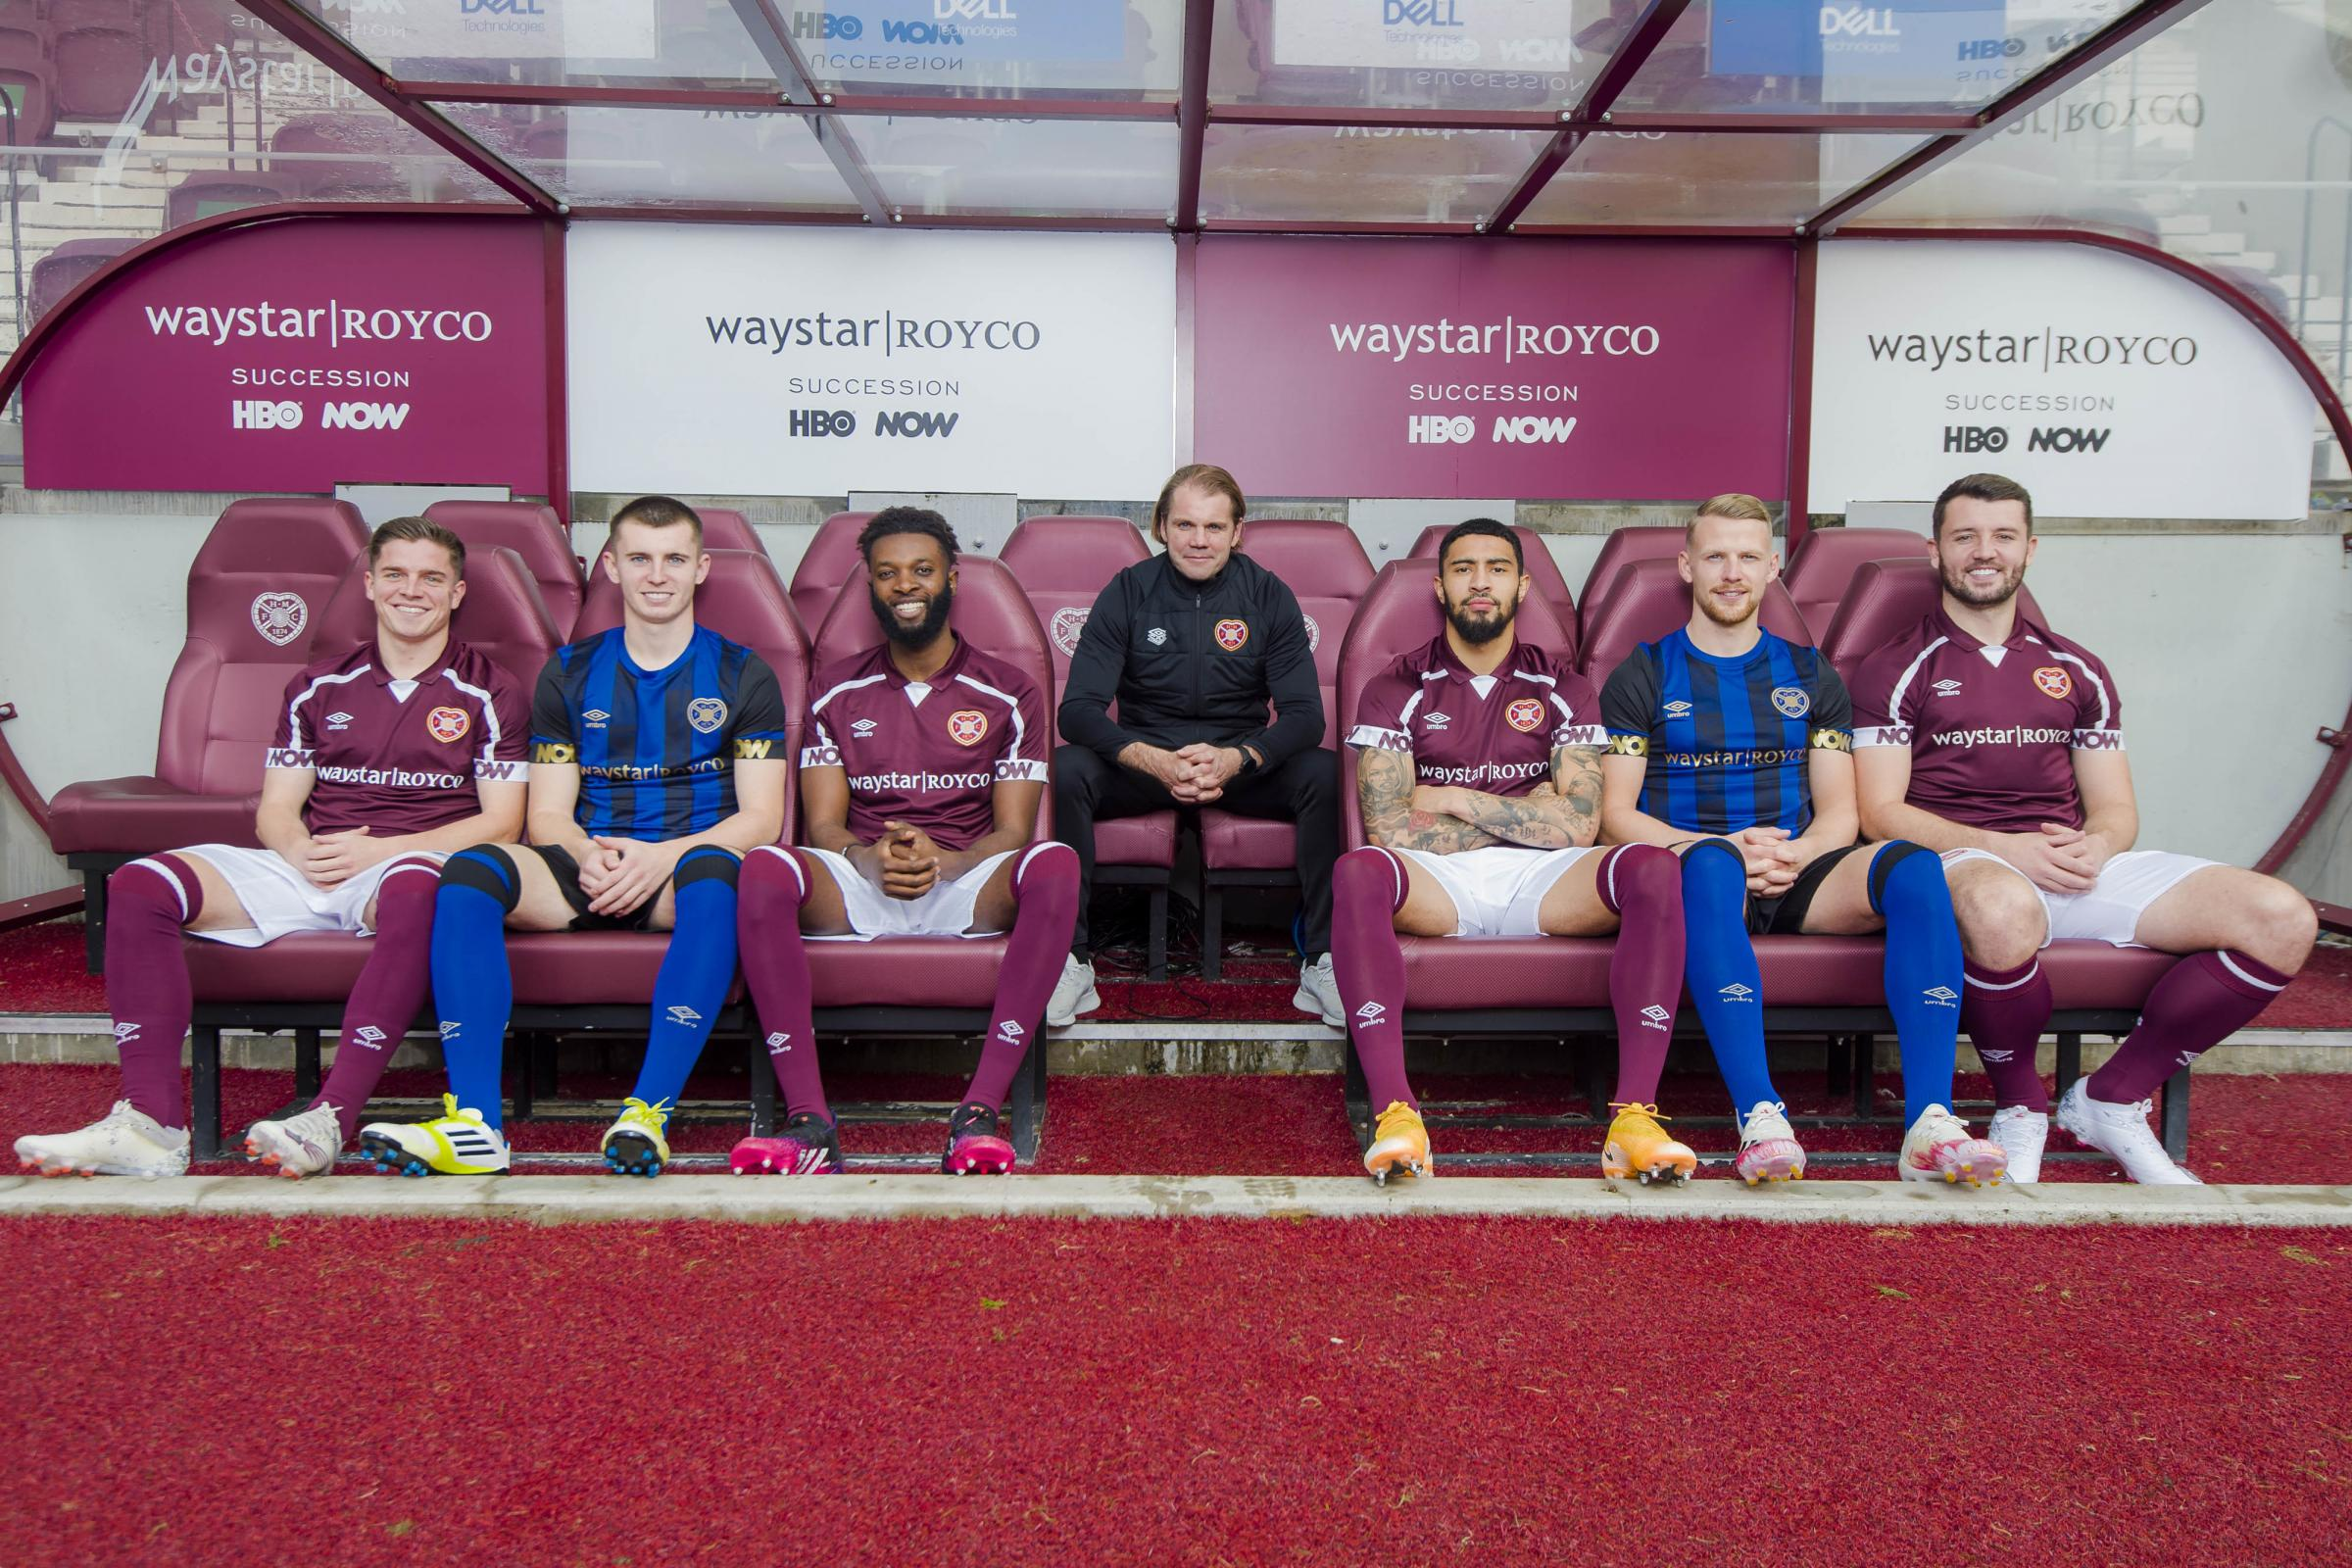 Hearts scores Succession's 'Roy family' as limited time sponsor